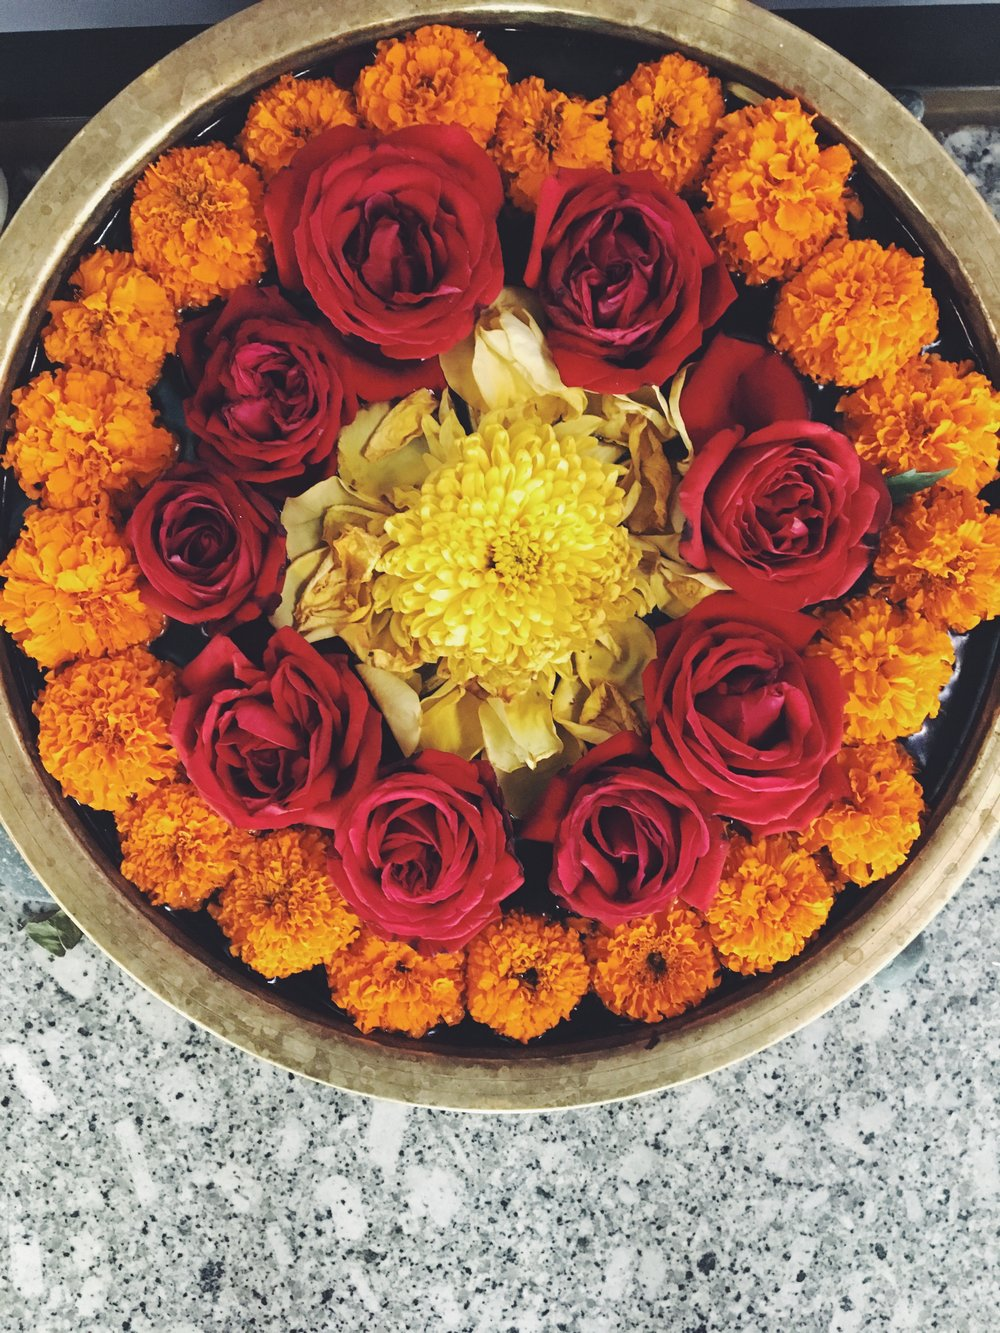 Beautiful flowers in a brass urn at the Kolkata airport.